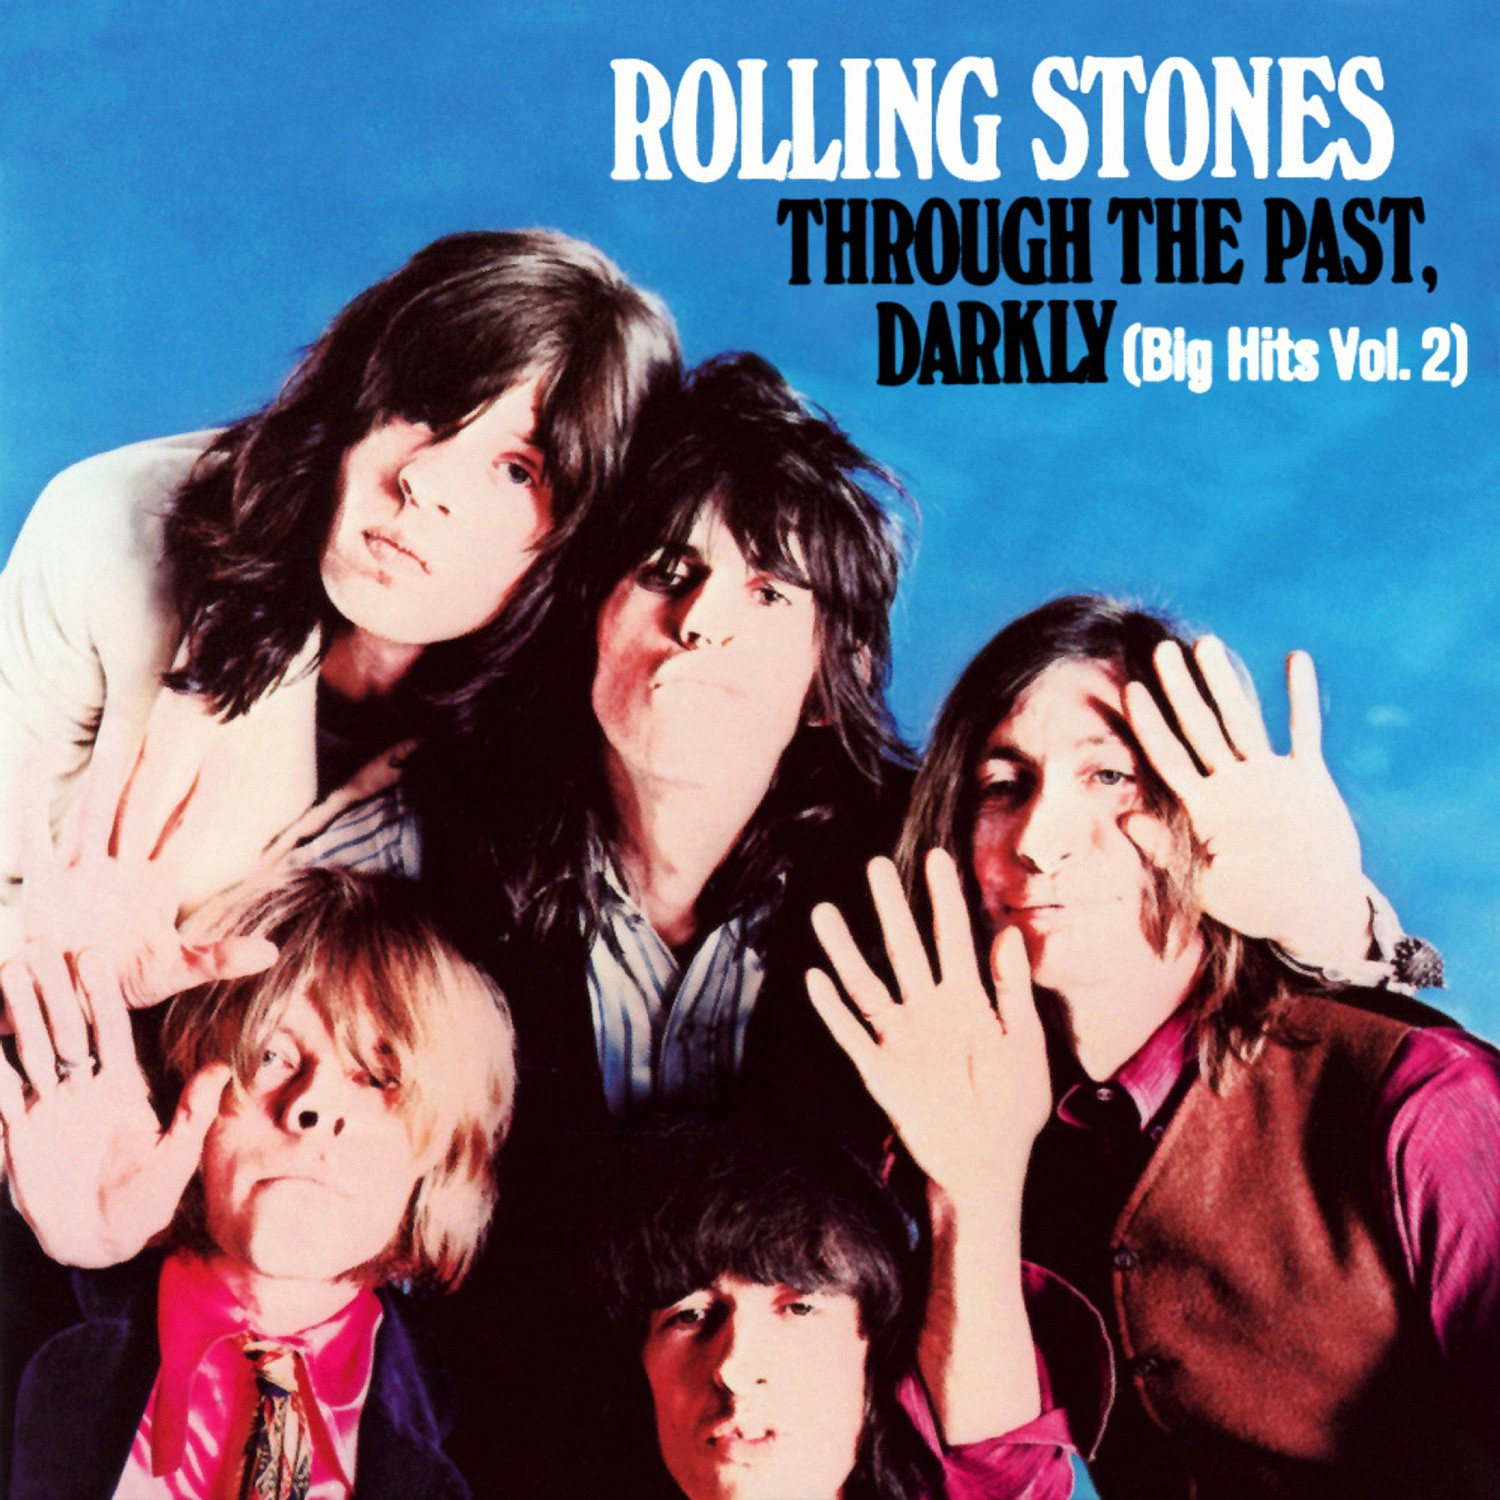 The rolling stones Through the past darkly